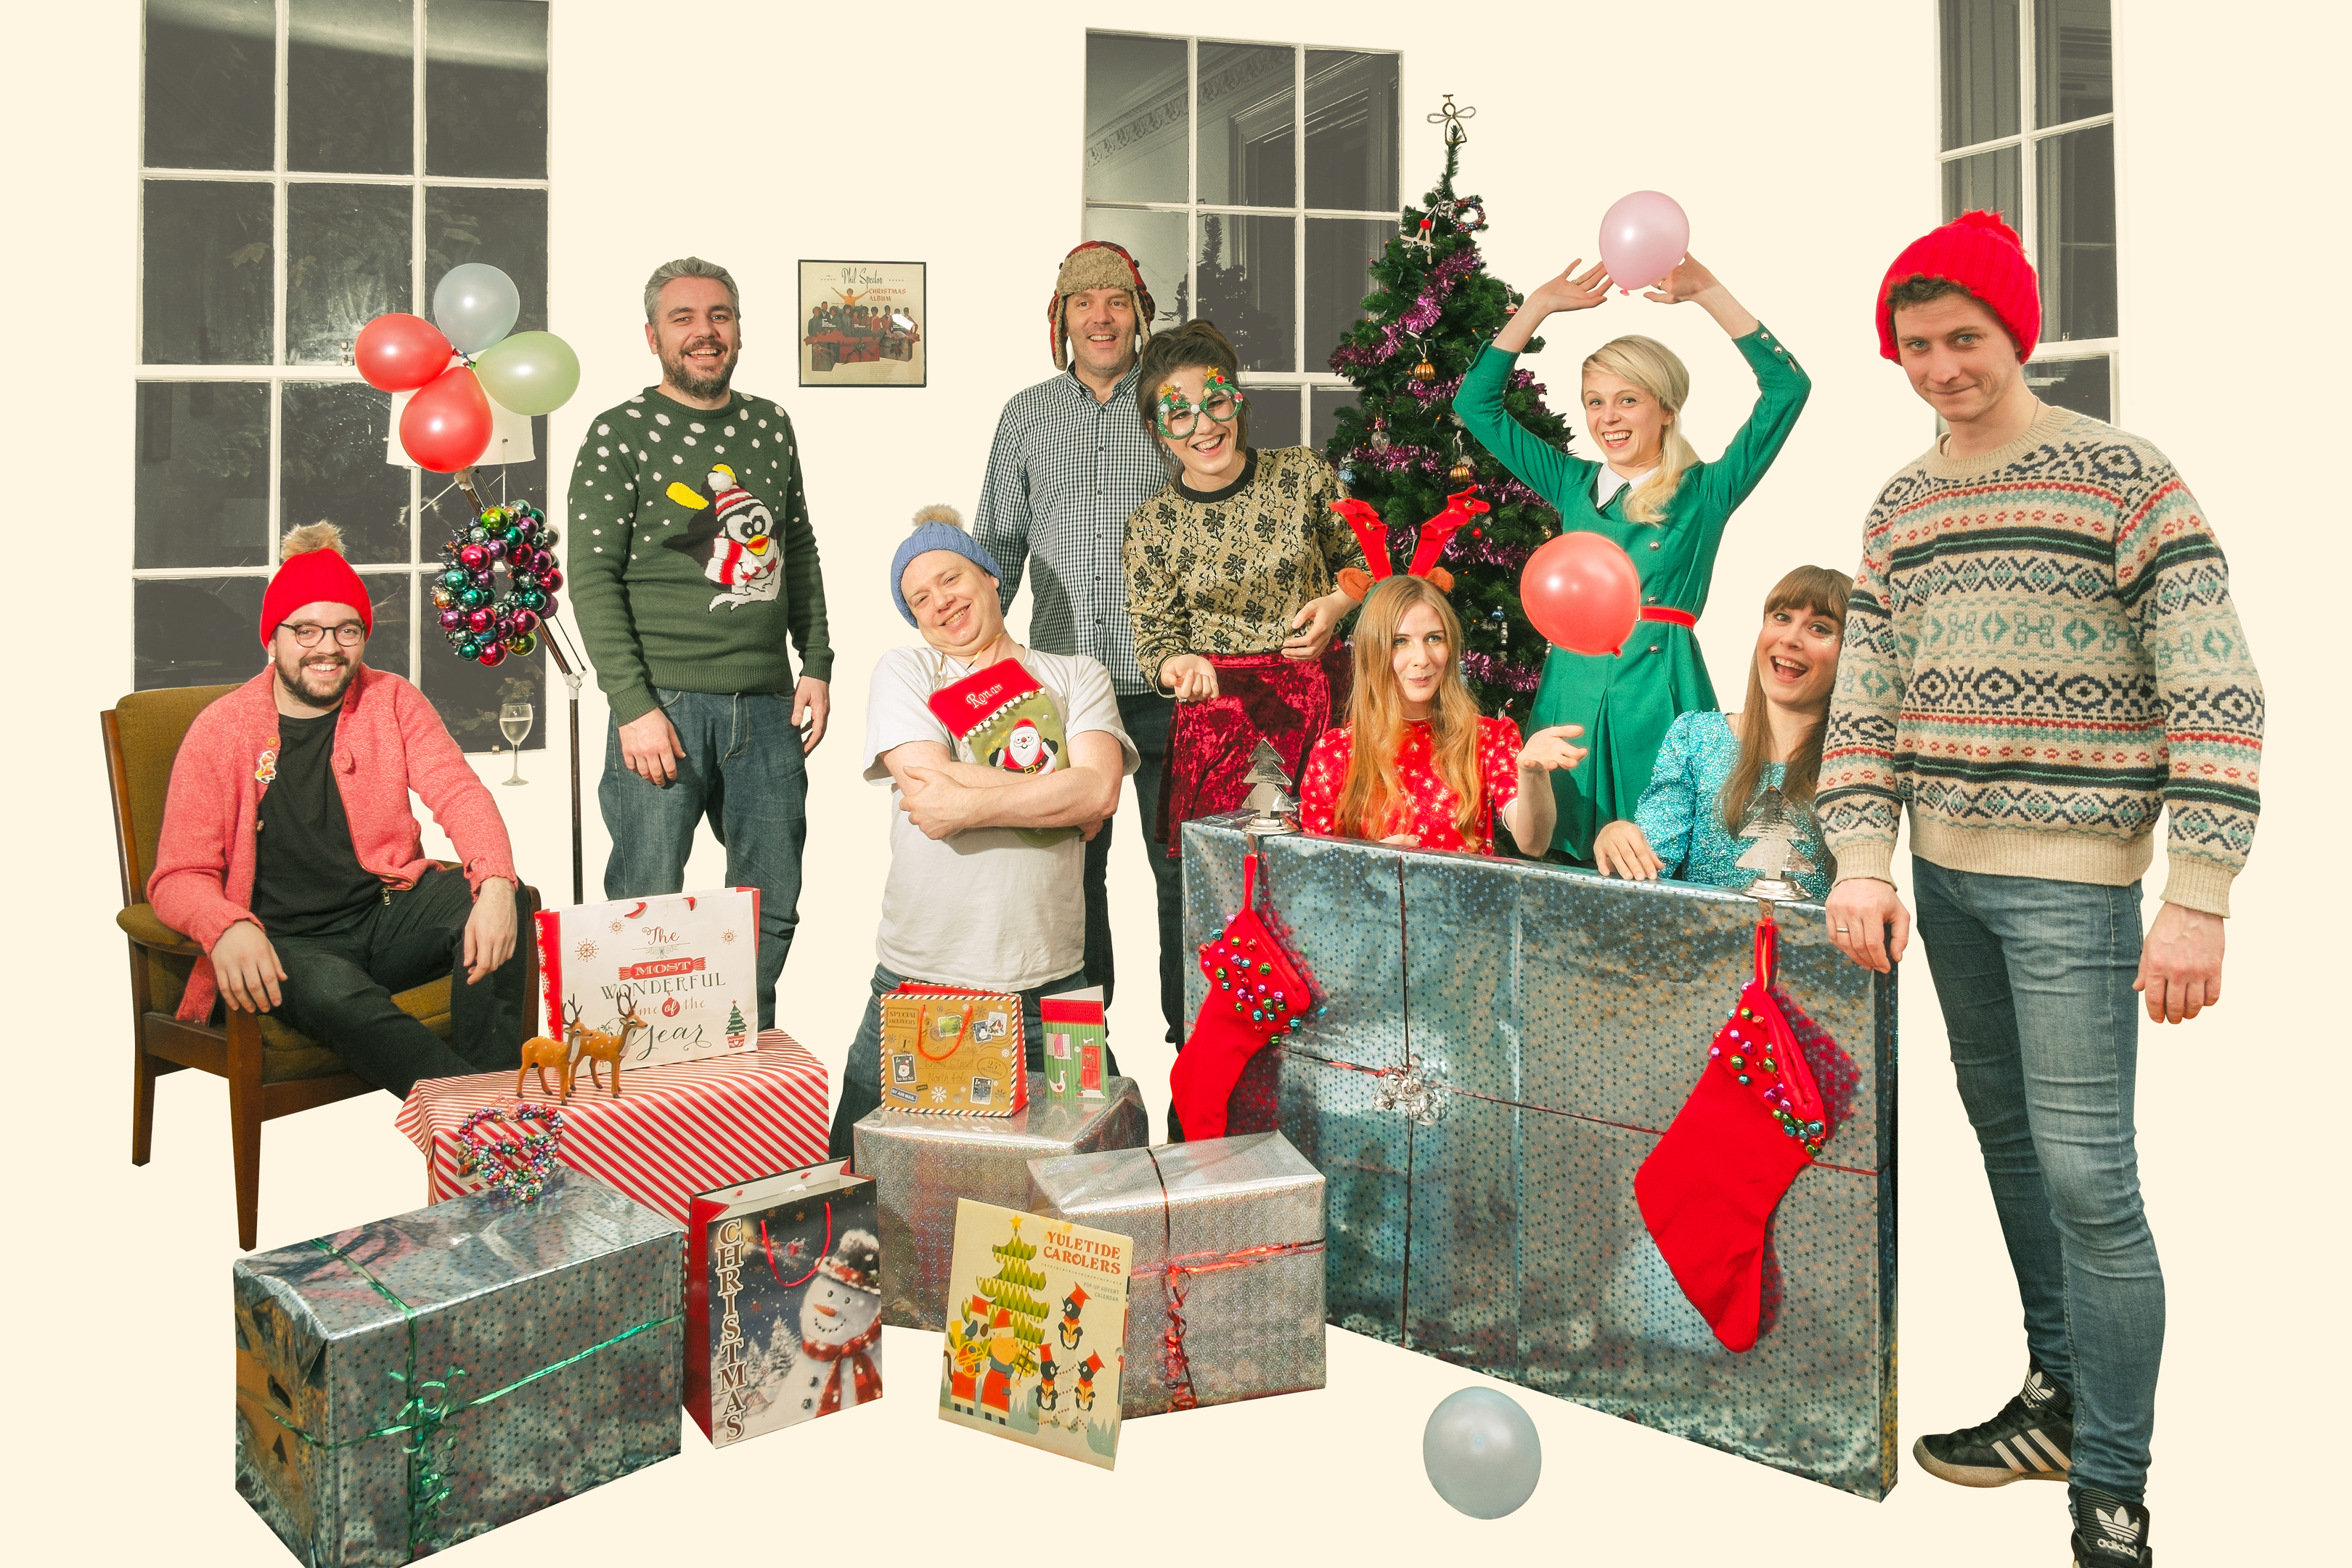 Members of TeenCanteen, BooHooHoo, Mark W. Georgsson, Last Night From Glasgow and La Chunky Studio recreate the Phil Spector Christmas album cover